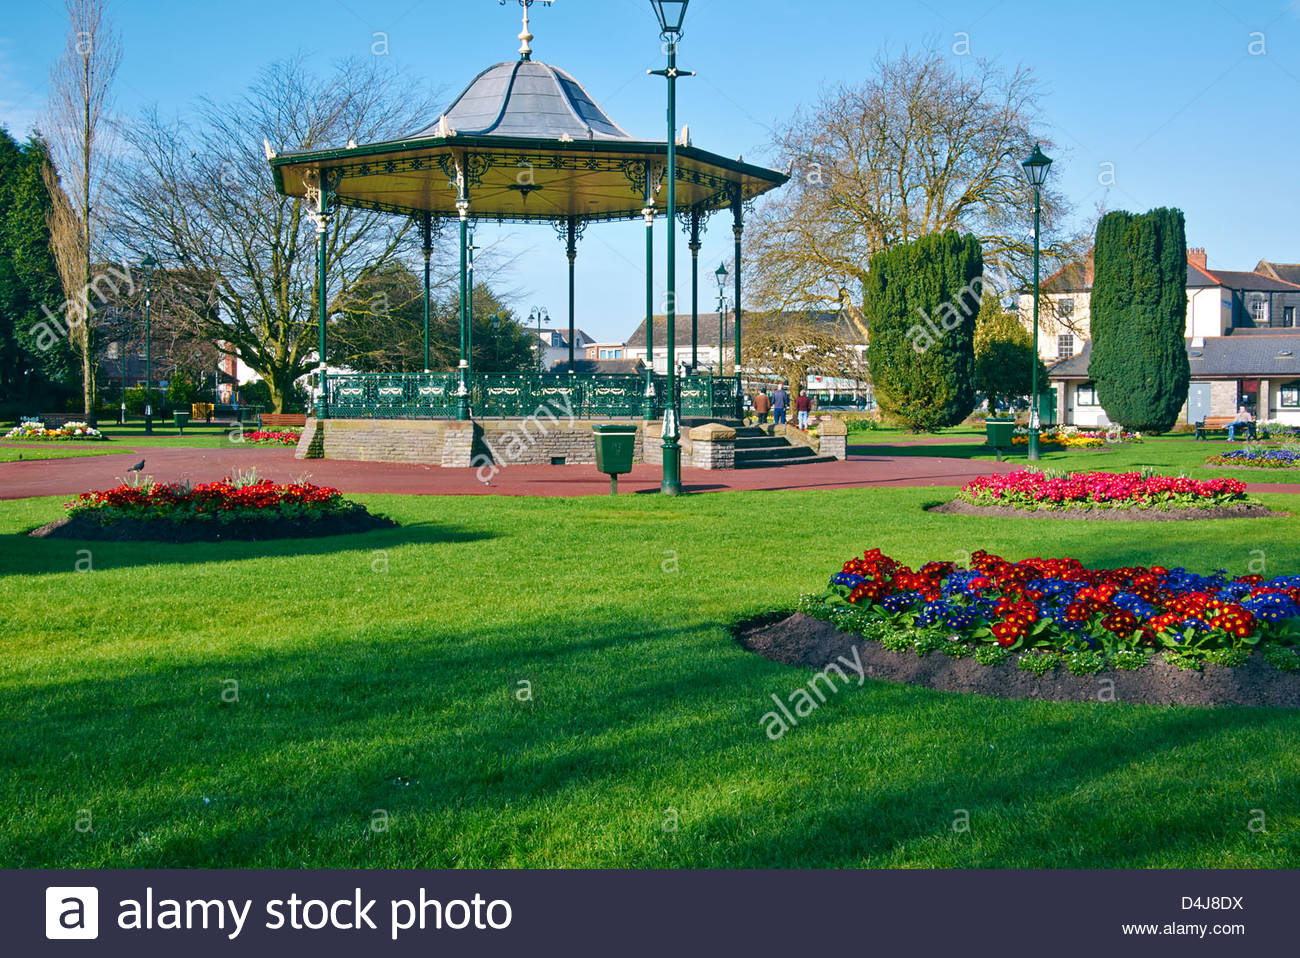 Victorian Bandstand In Victoria Gardens In Neath South